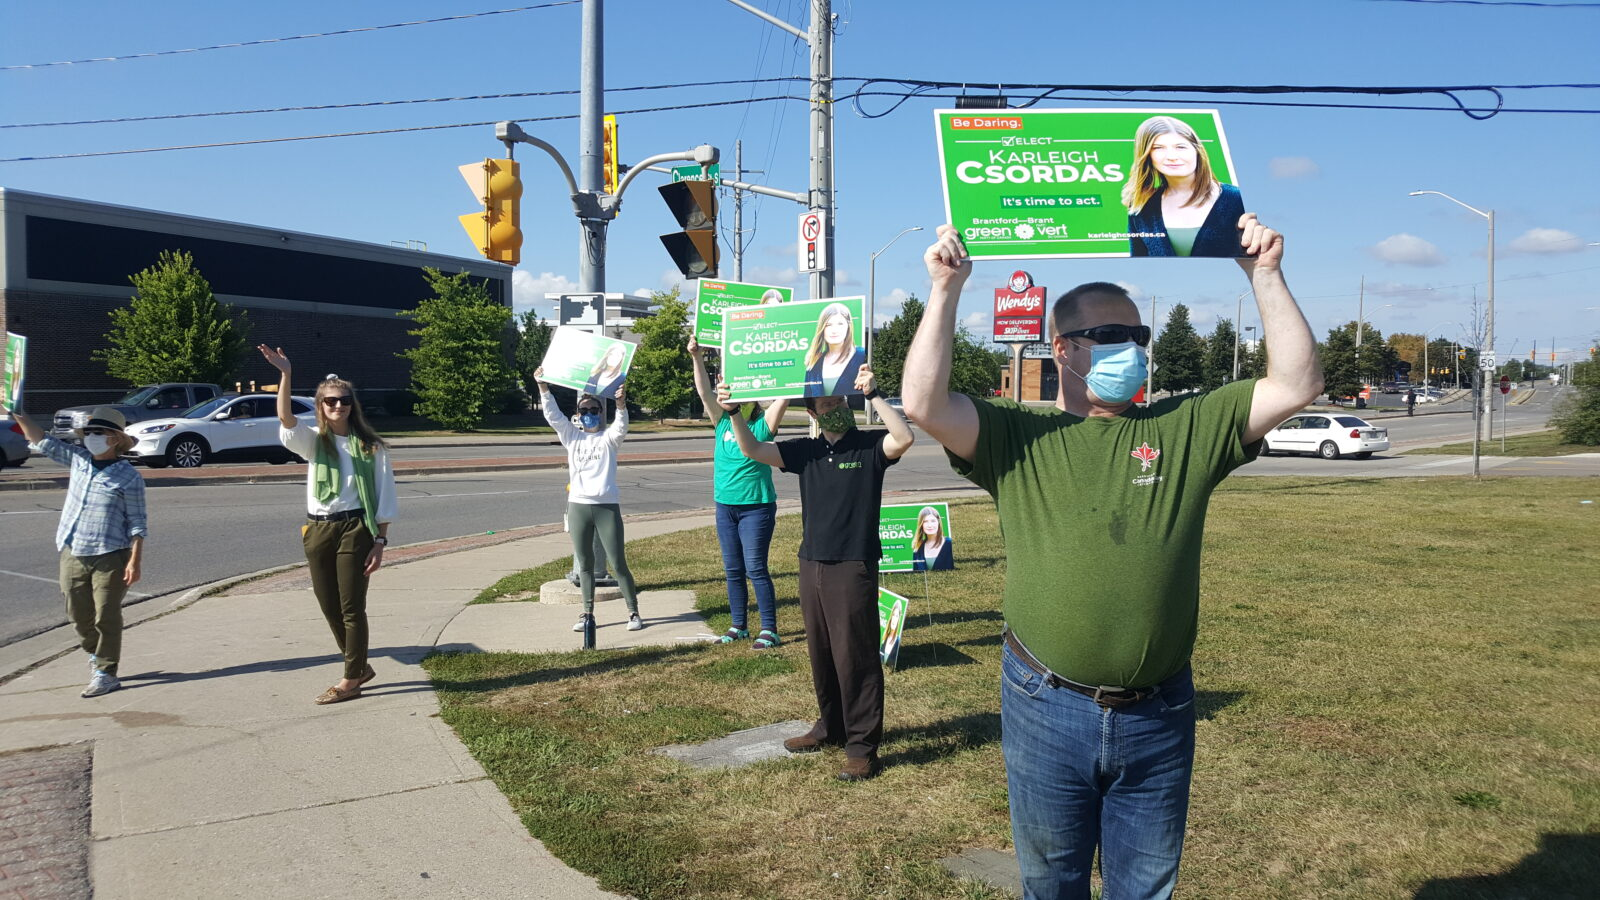 The campaign team waves signs